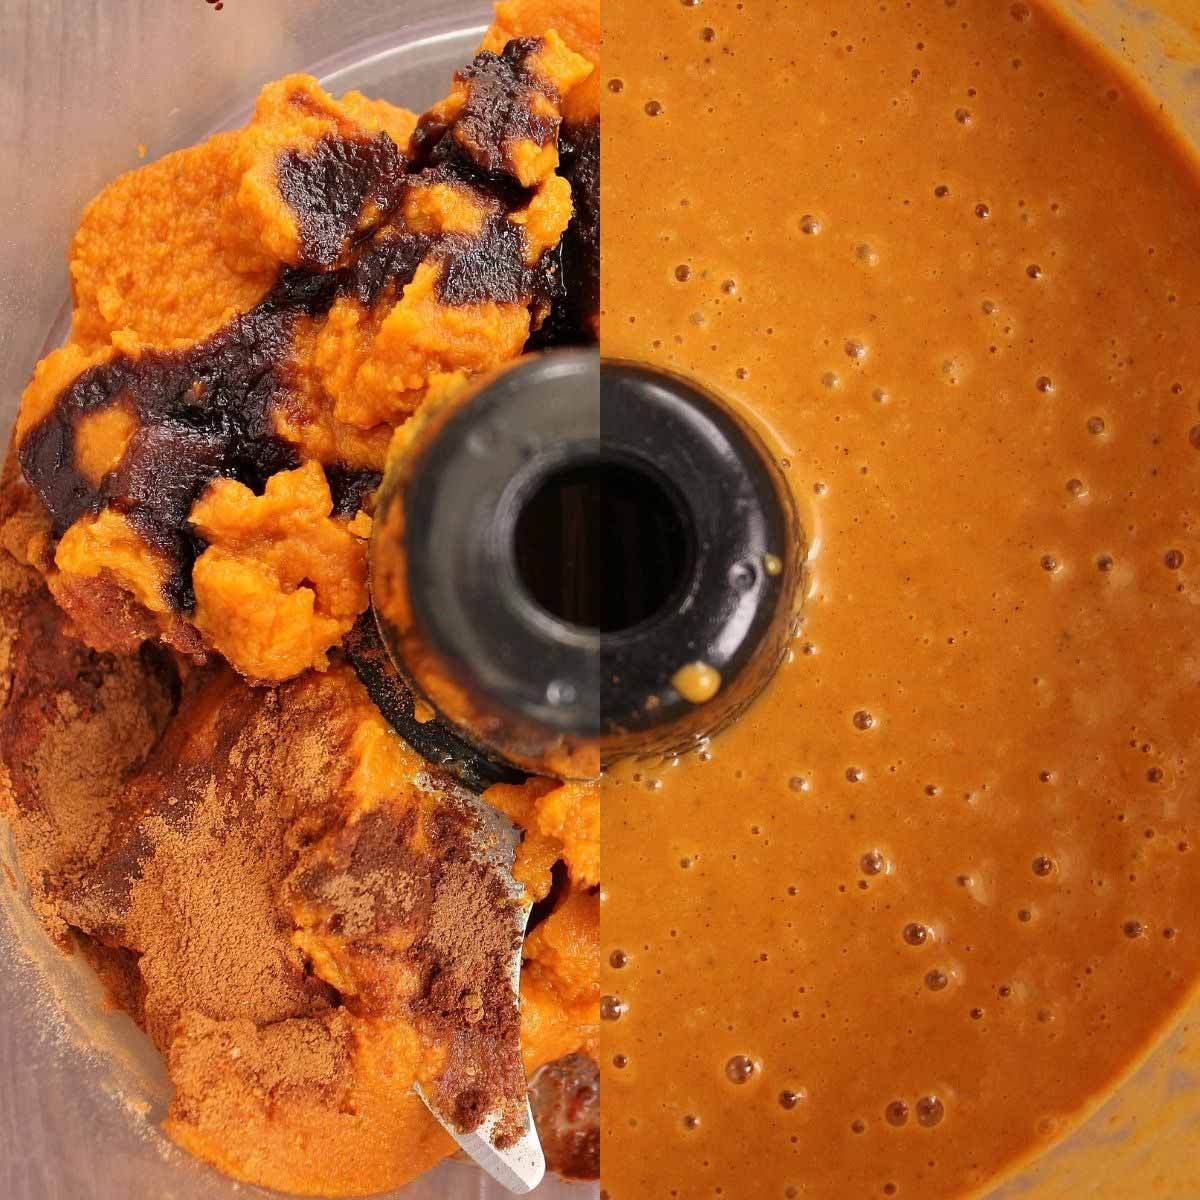 Before and after photos of homemade pumpkin pie filling in a food processor bowl.